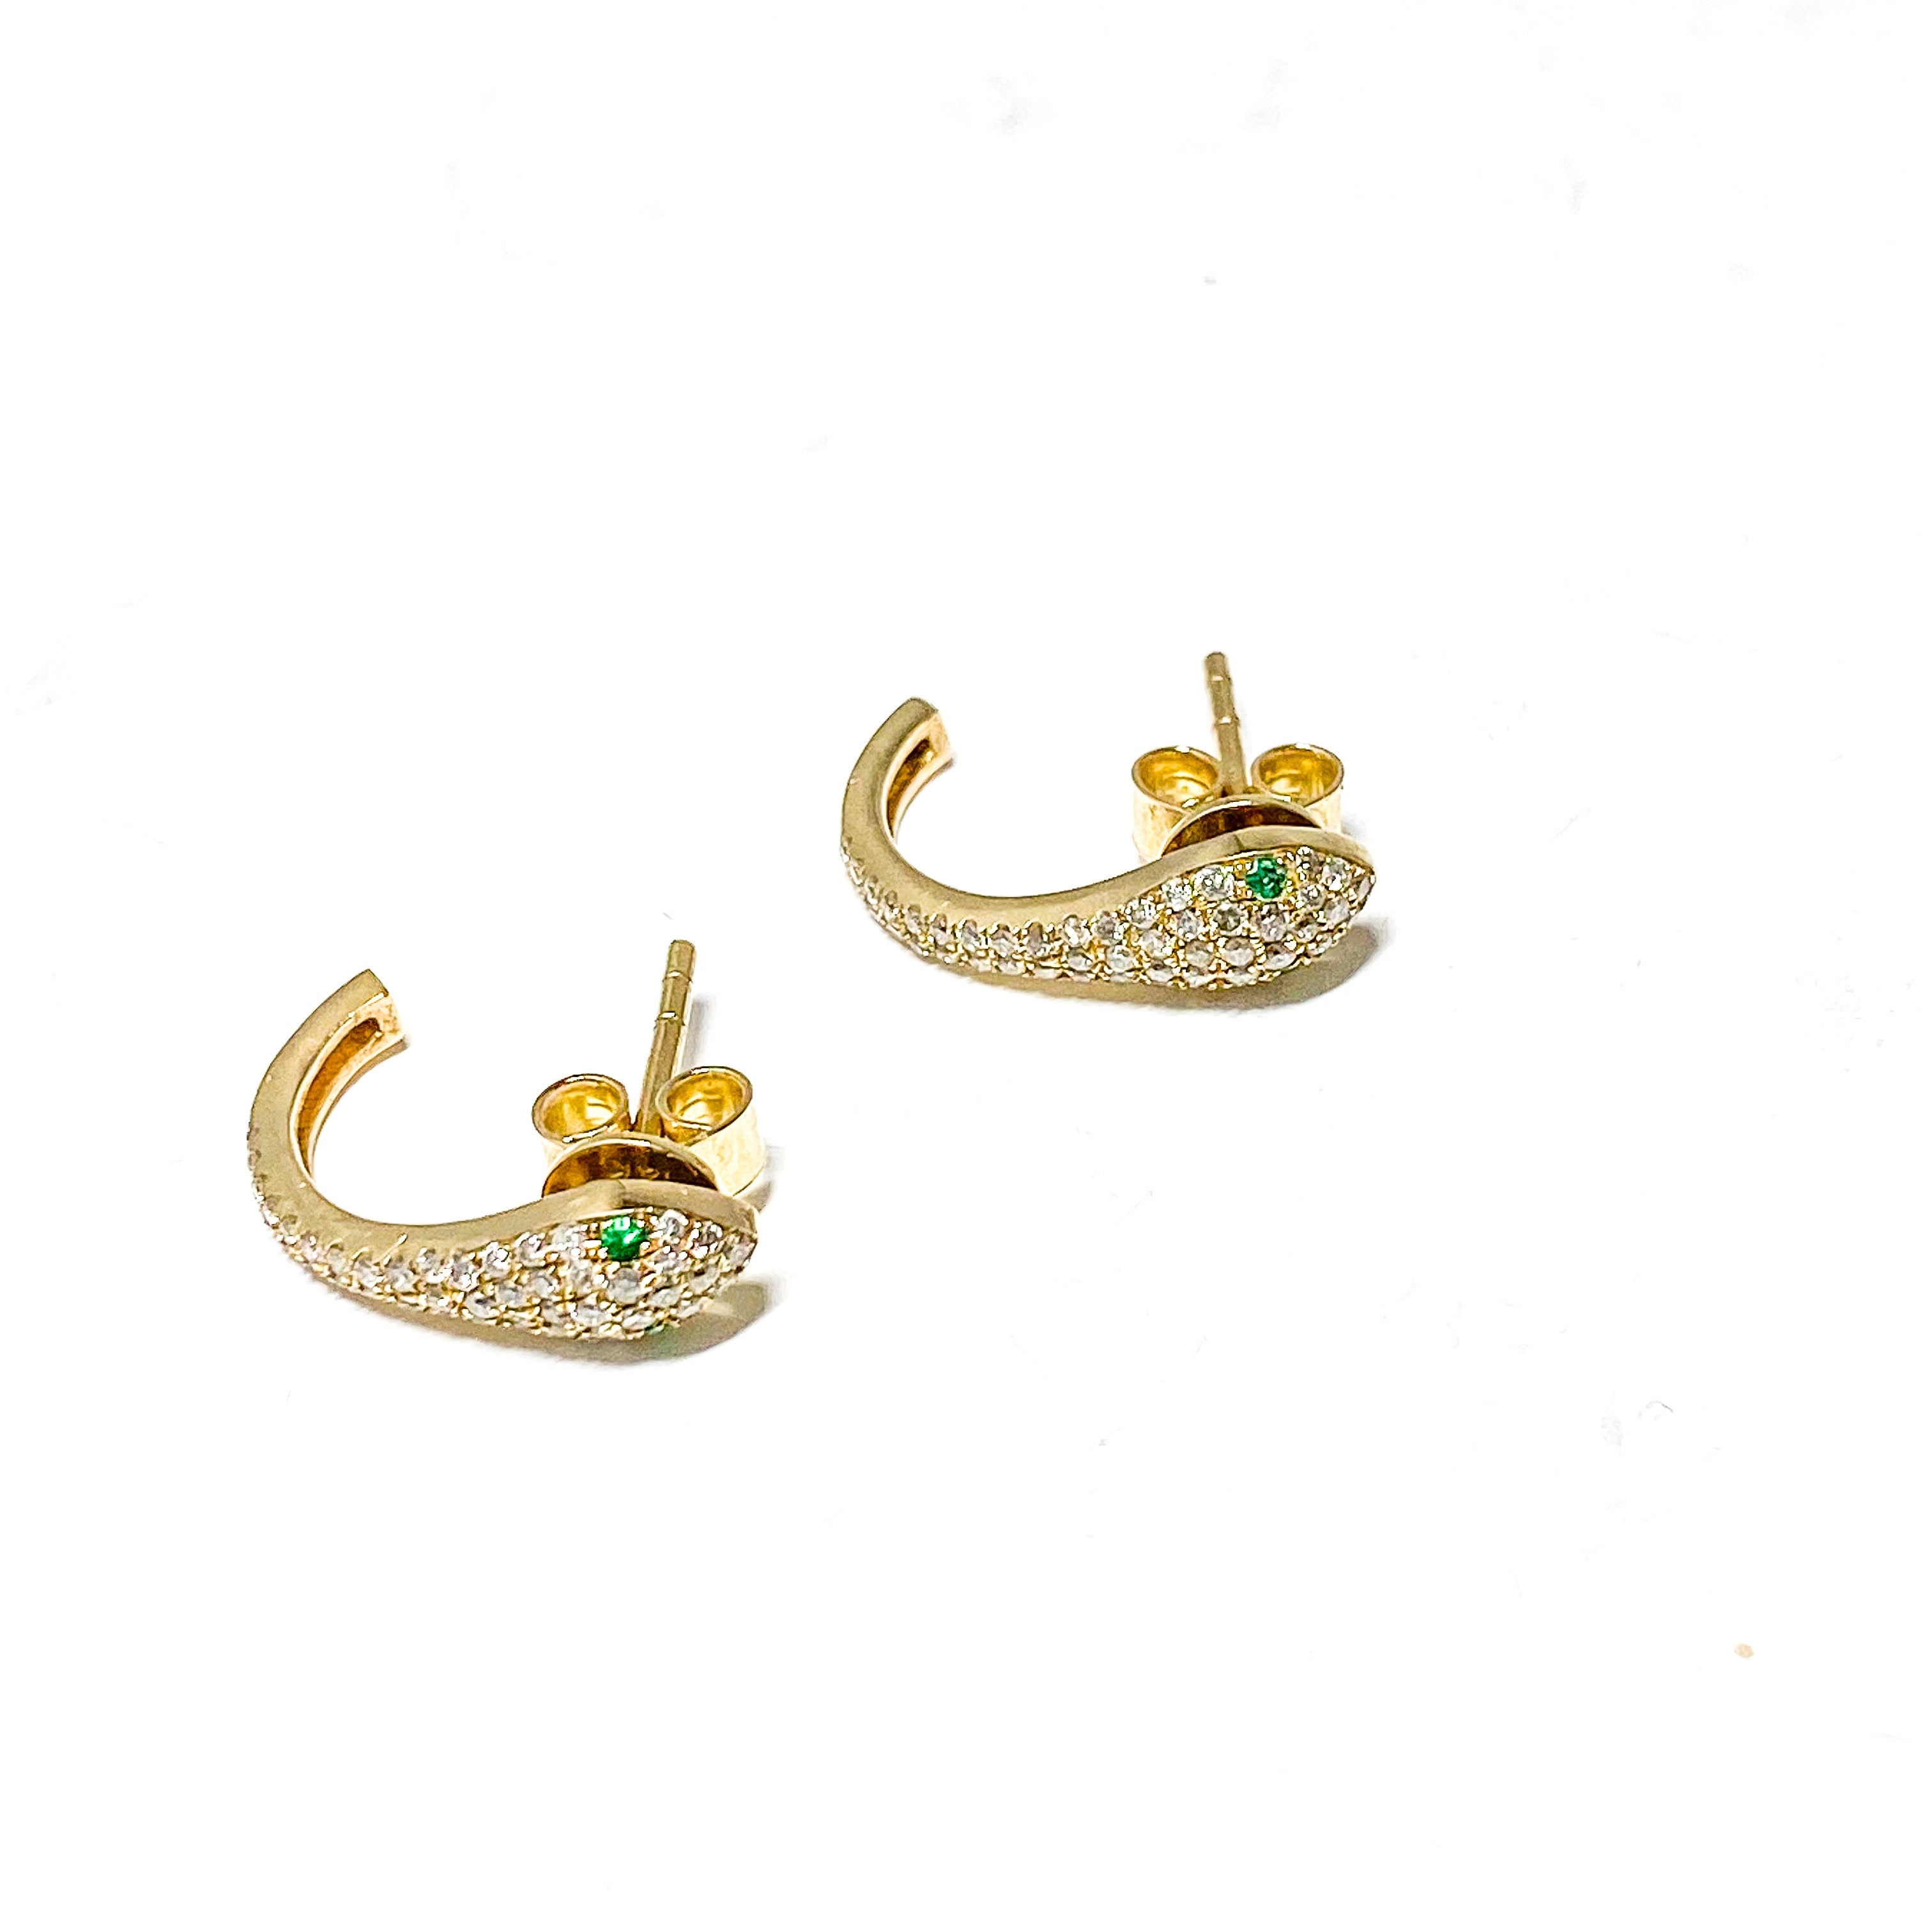 S.Row Designs 14k Gold Snake Huggie Earrings